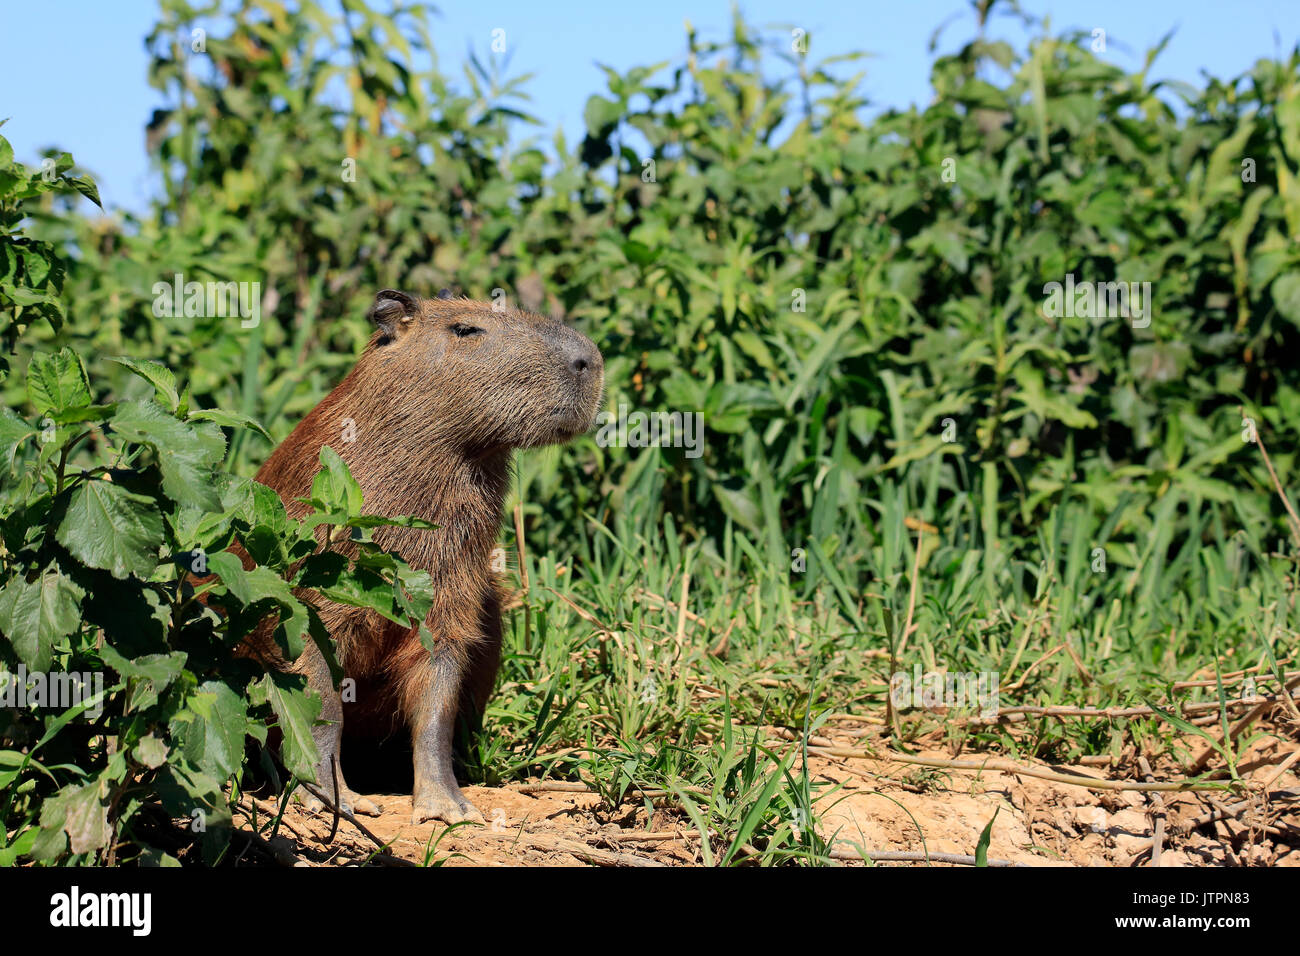 Capybara Sitting on the River Bank. Pantanal, Brazil - Stock Image